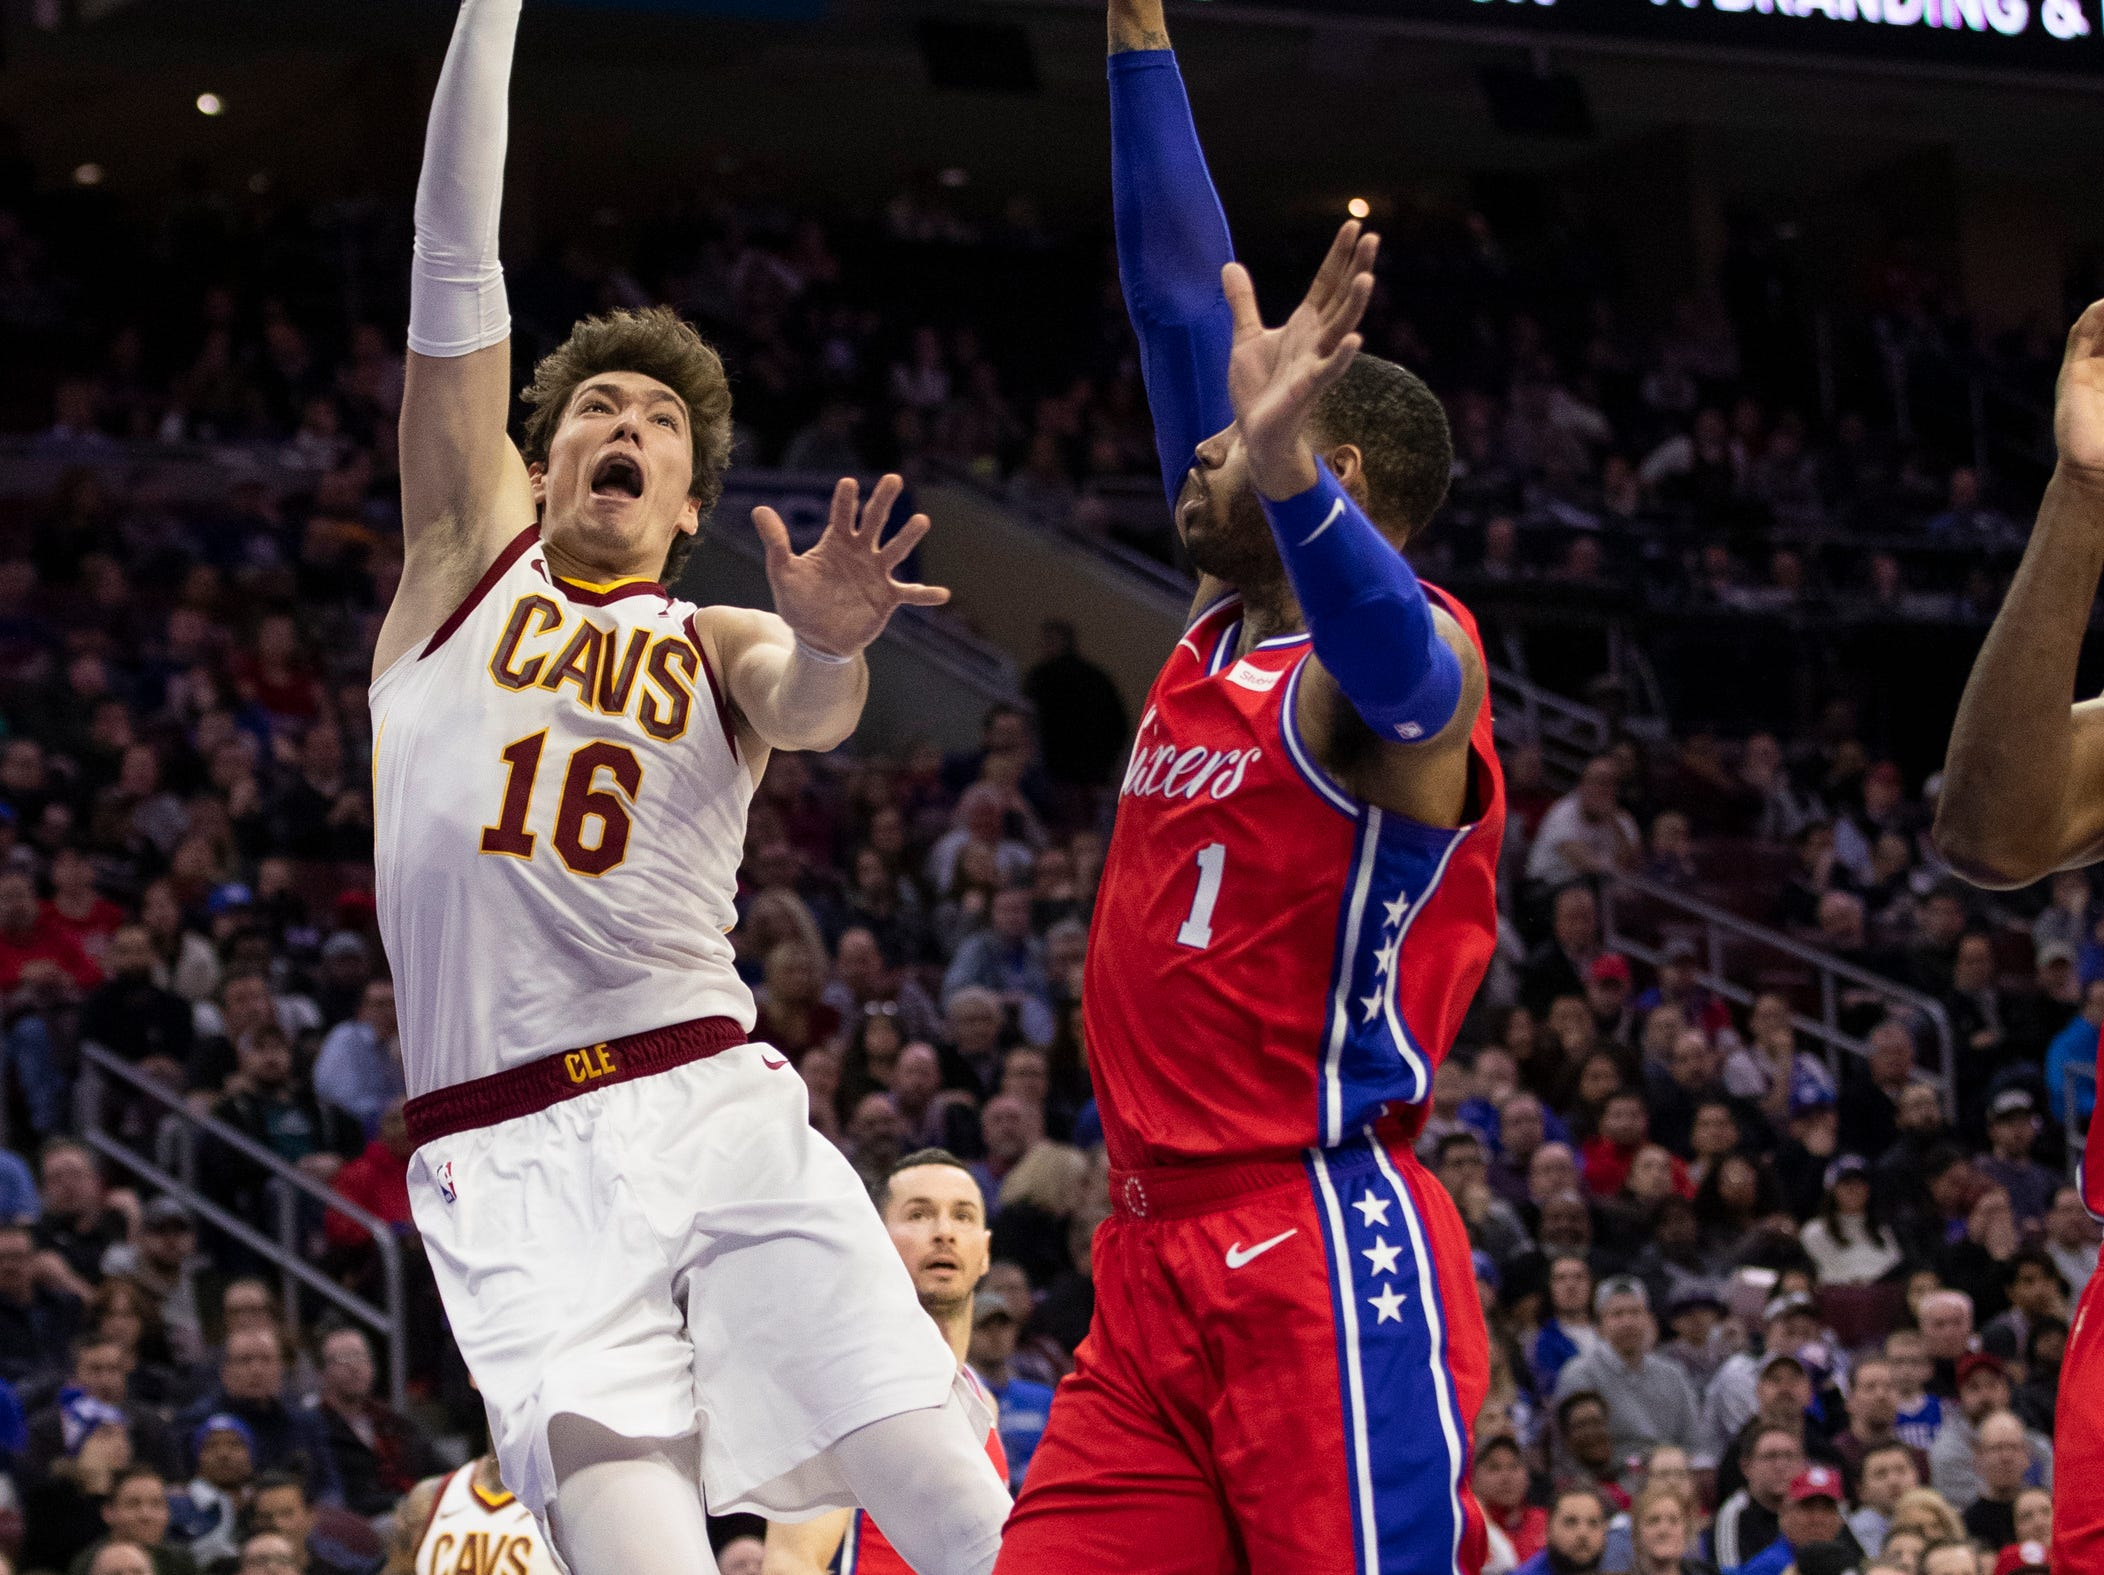 Cleveland Cavaliers' Cedi Osman, left, of Turkey, shoots with Philadelphia 76ers' Mike Scott, right, defending during the second half of an NBA basketball game, Tuesday, March 12, 2019, in Philadelphia. The 76ers won 106-99. (AP Photo/Chris Szagola)